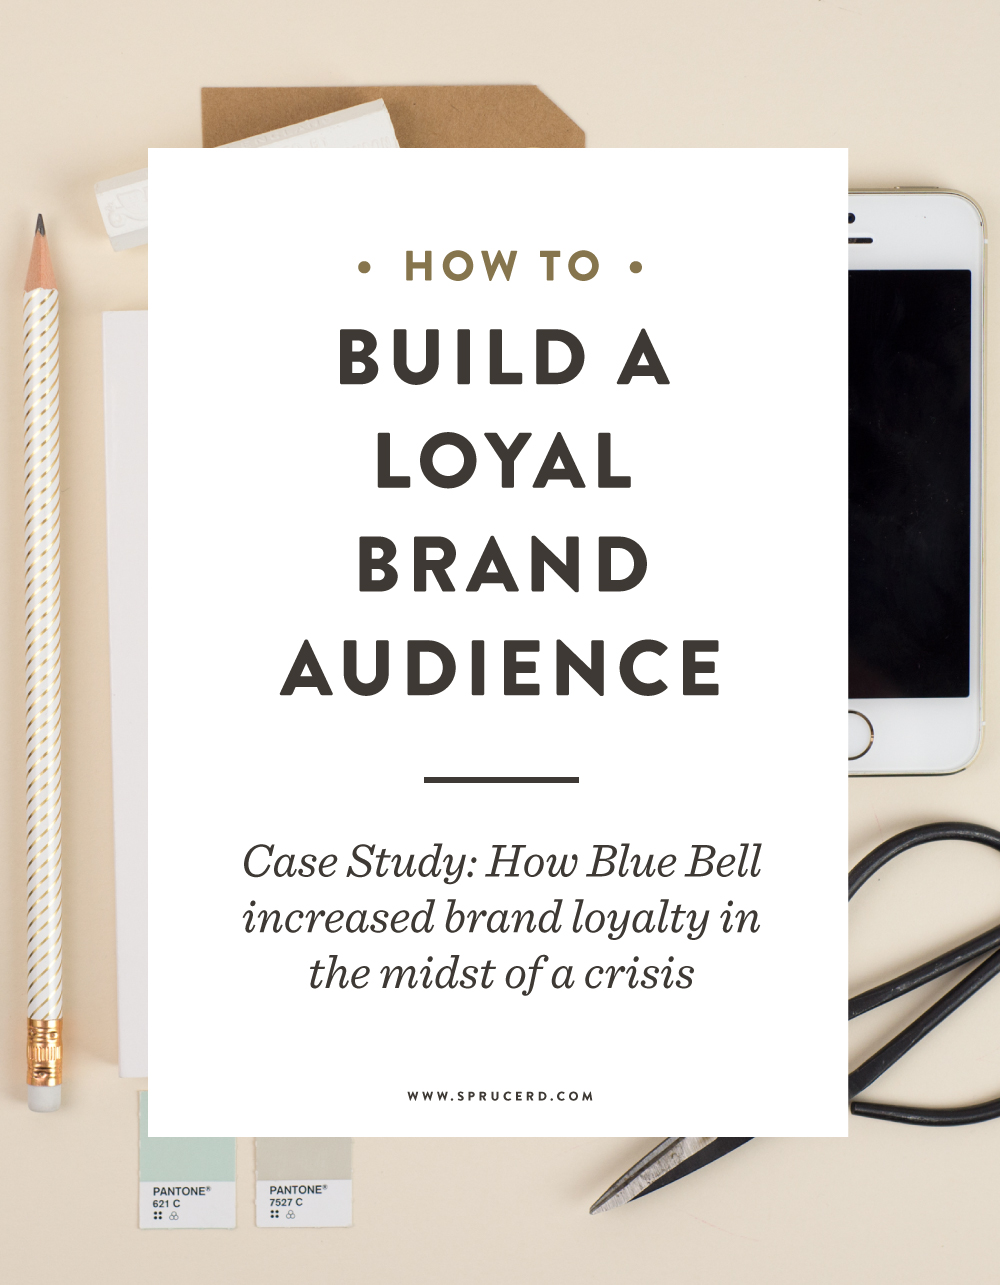 How to build a loyal brand audience (Case Study: How Blue Bell increased brand loyalty in the midst of a crisis) | How can you create loyal brand ambassadors? We will walk through a case study of how Blue Bell survived a tough spot, and resulted in a more loyal audience than before. Take notes on how you can increase brand loyalty in your business/blog.